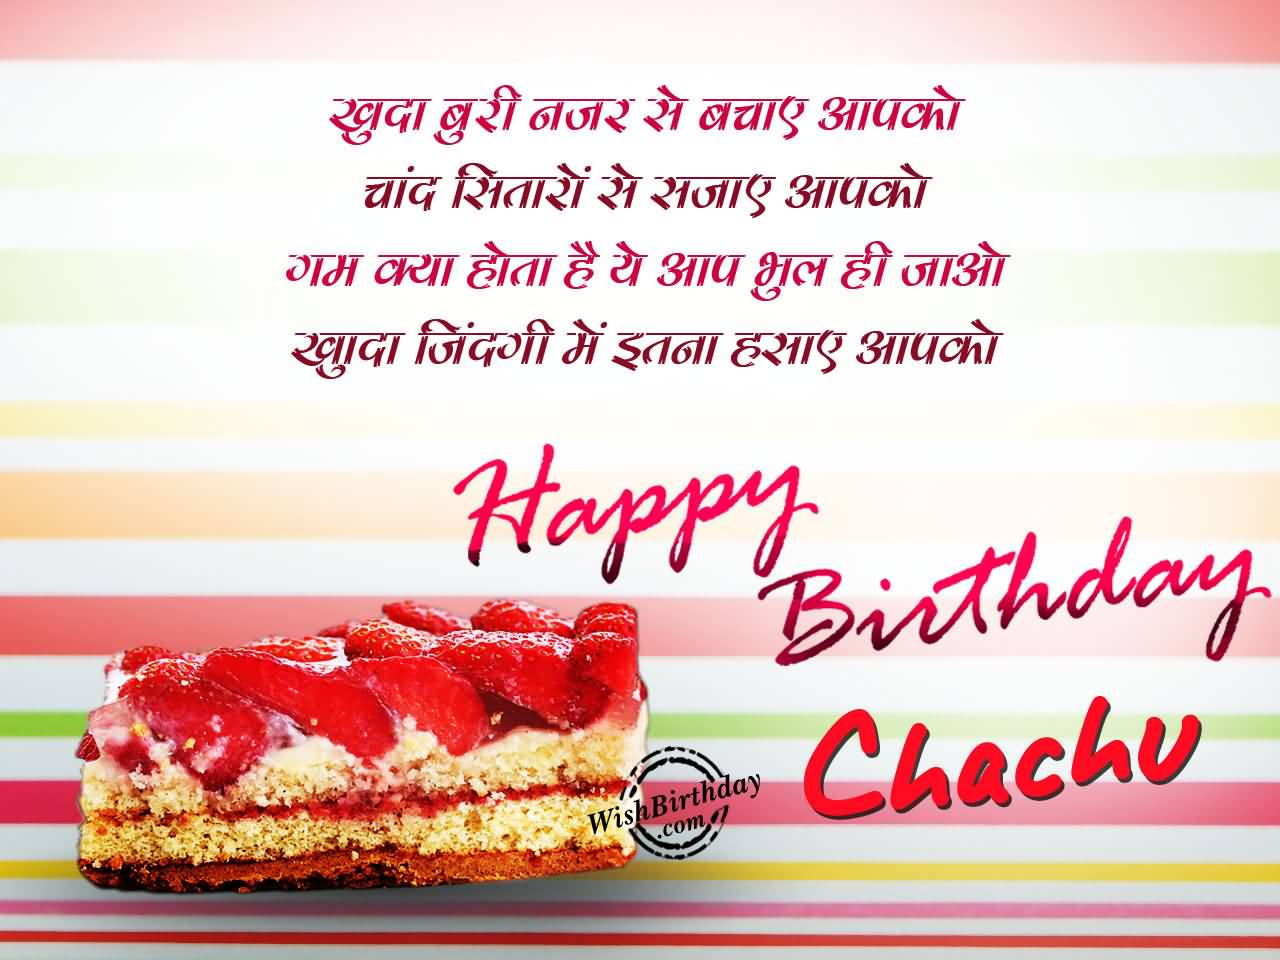 Happy Birthday Chachu In Hindi (2)